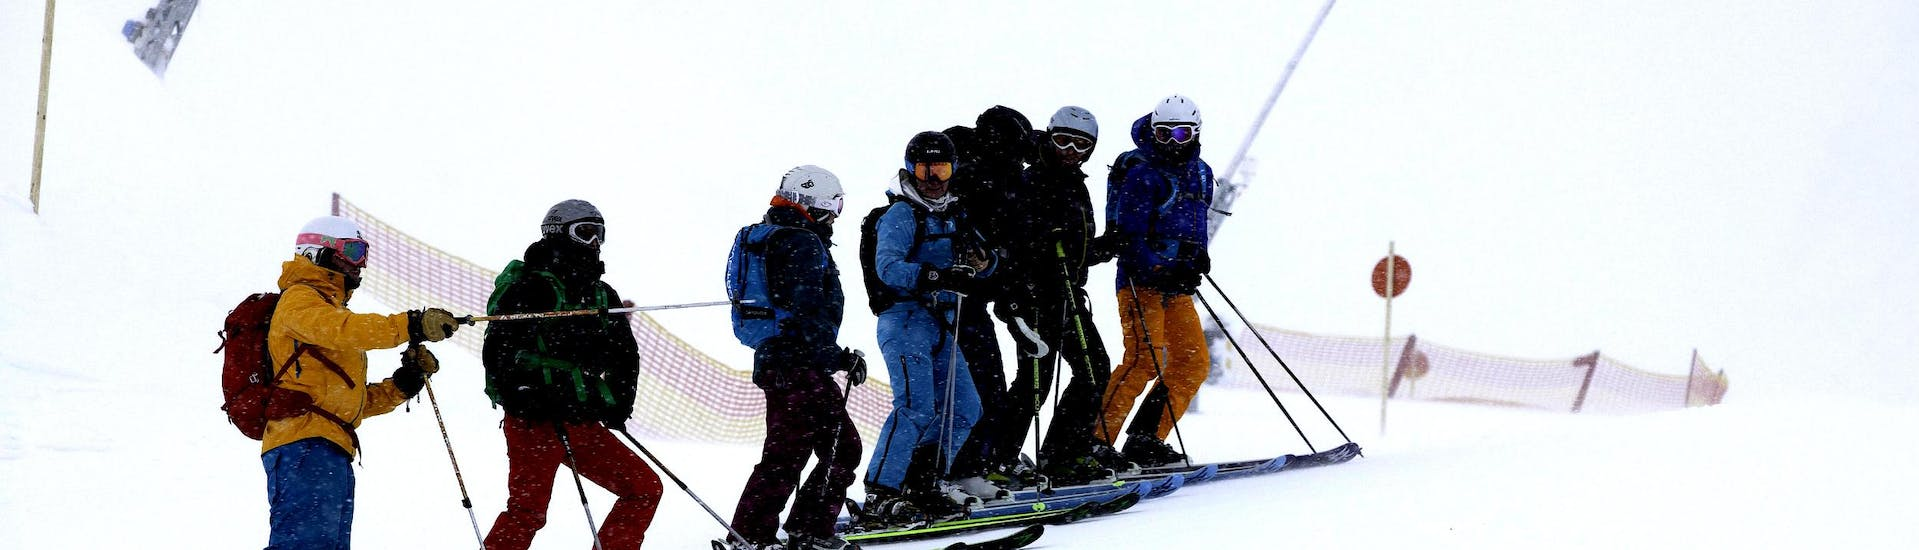 Private Ski Lessons for Adults on Hündle - All Levels met Skischule Oberstaufen - Hero image